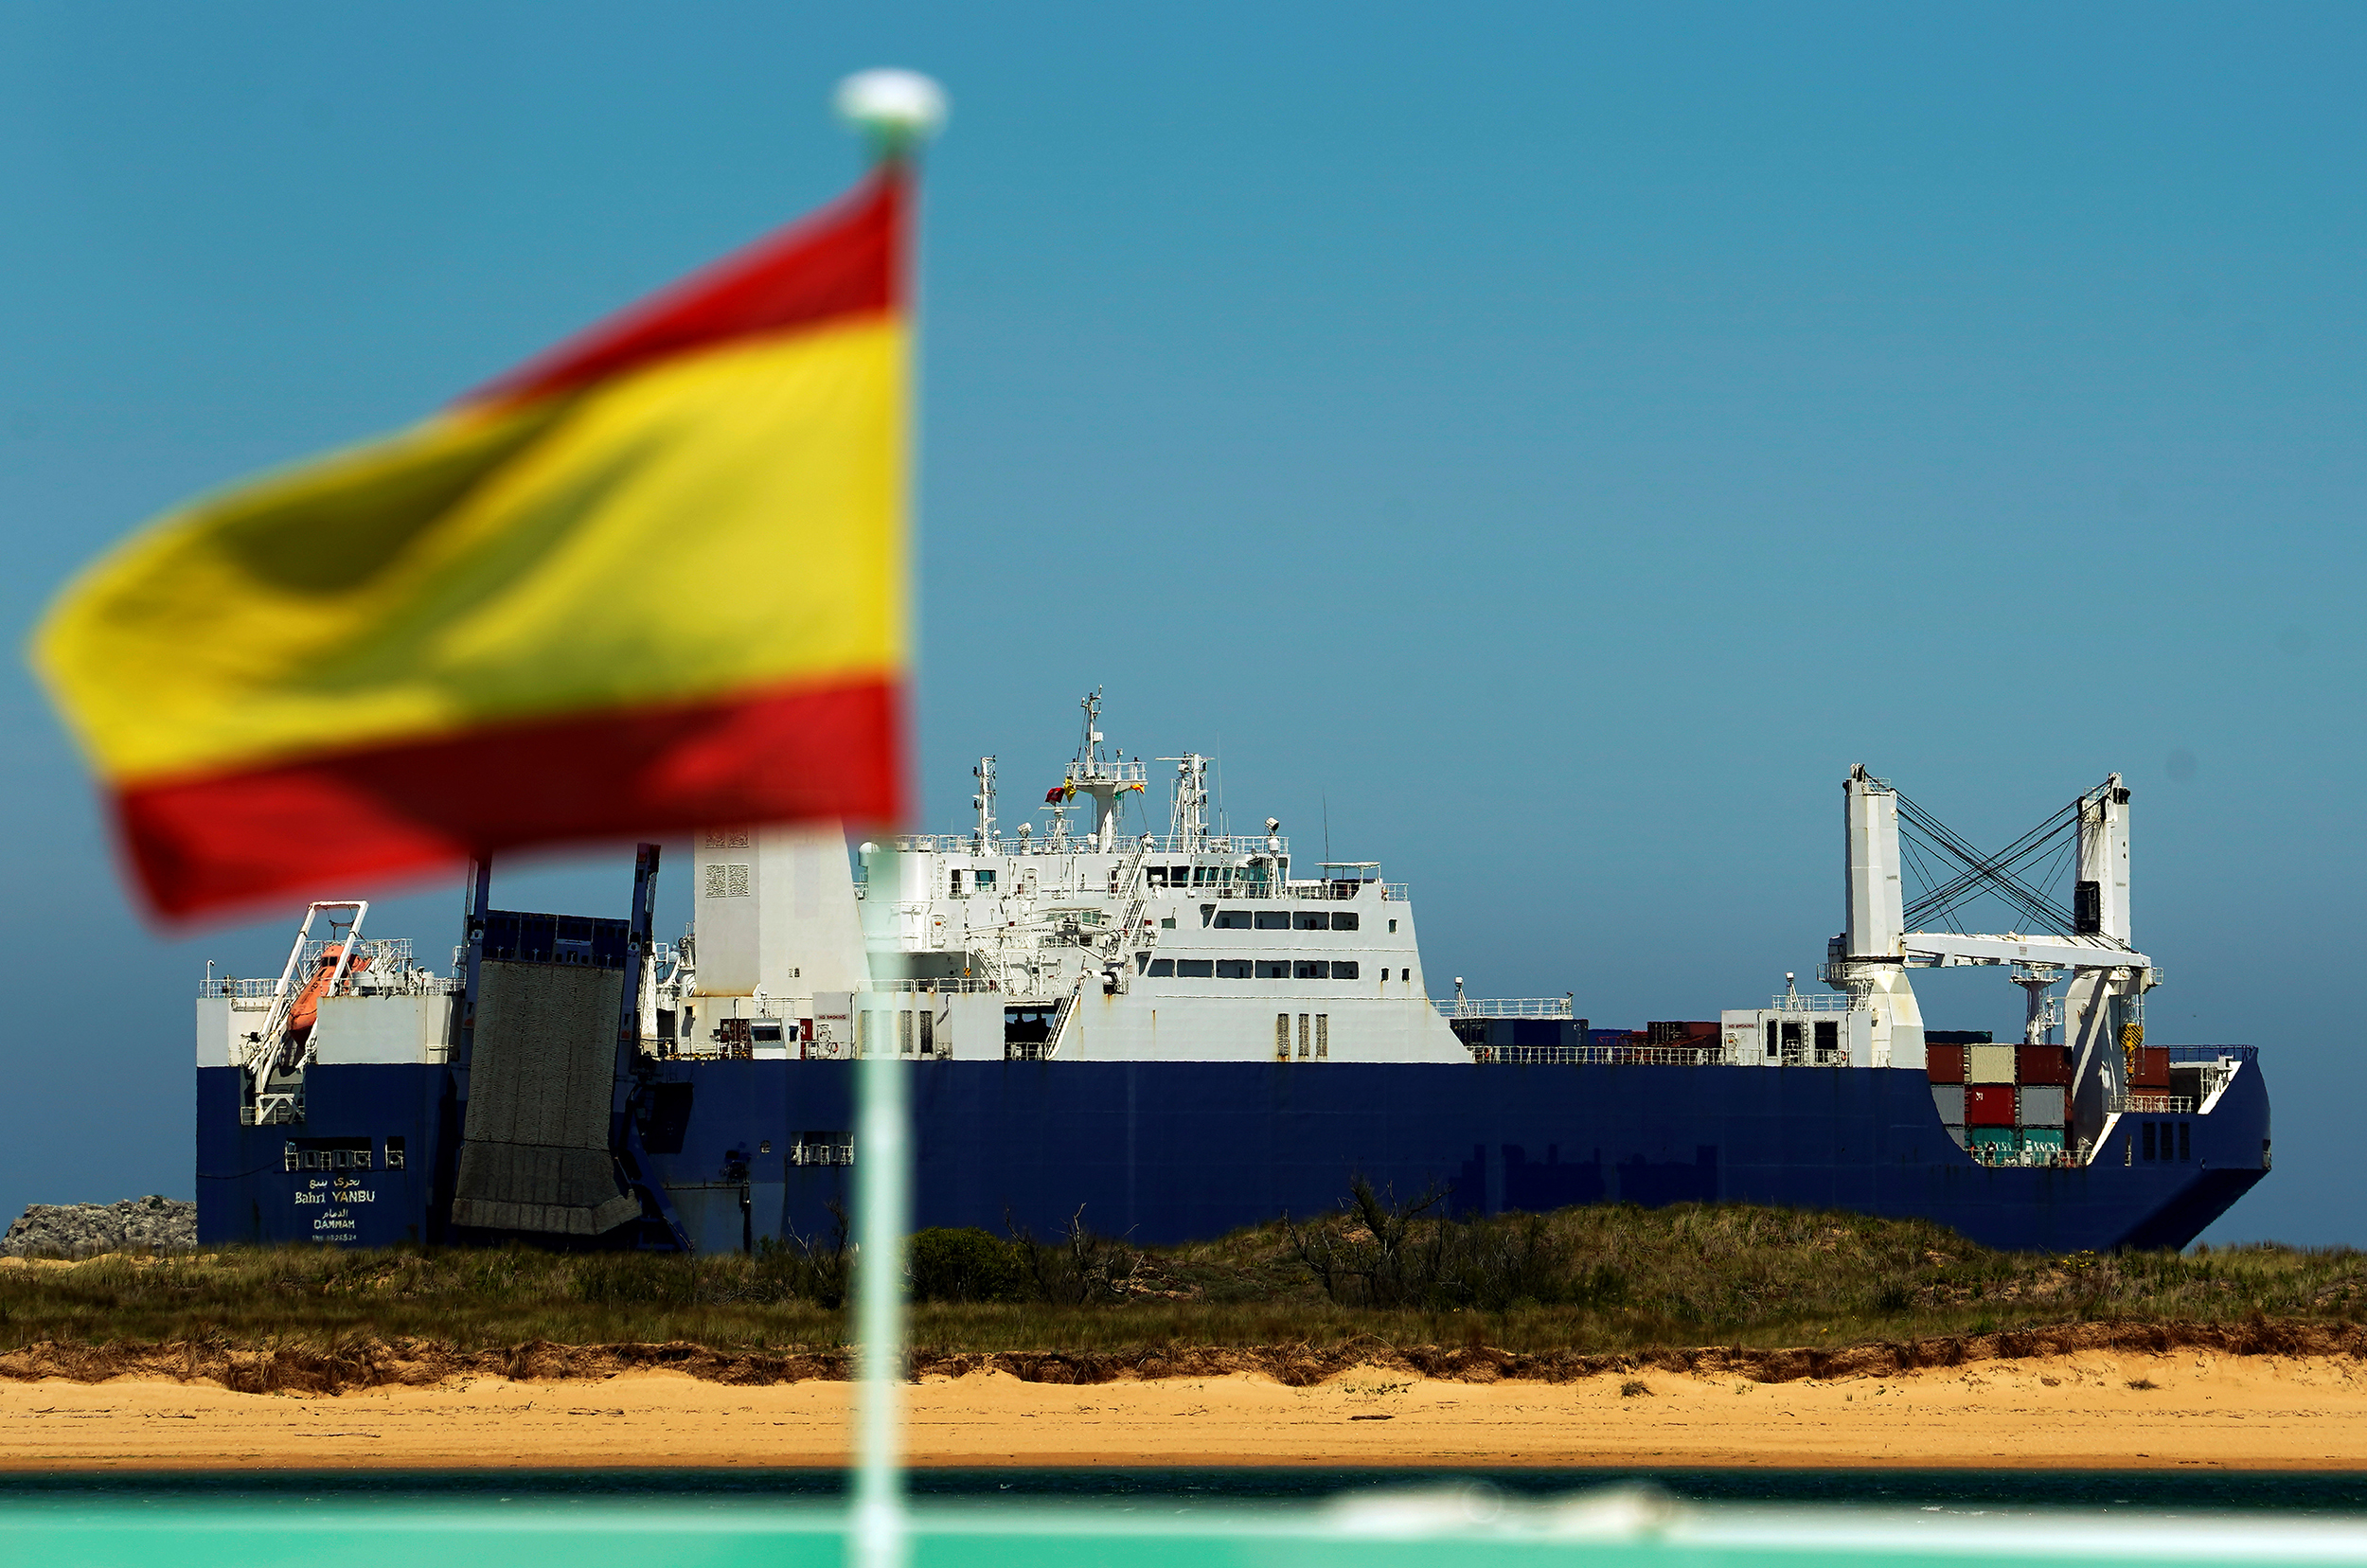 Saudi cargo ship Bahri-Yanbu passes a Spanish flag while departing the port of Santander, Spain May 13, 2019, after a human rights group sought to block the loading of a weapons cargo in Le Havre on humanitarian grounds, arguing the arms could be used against civilians in Yemen.